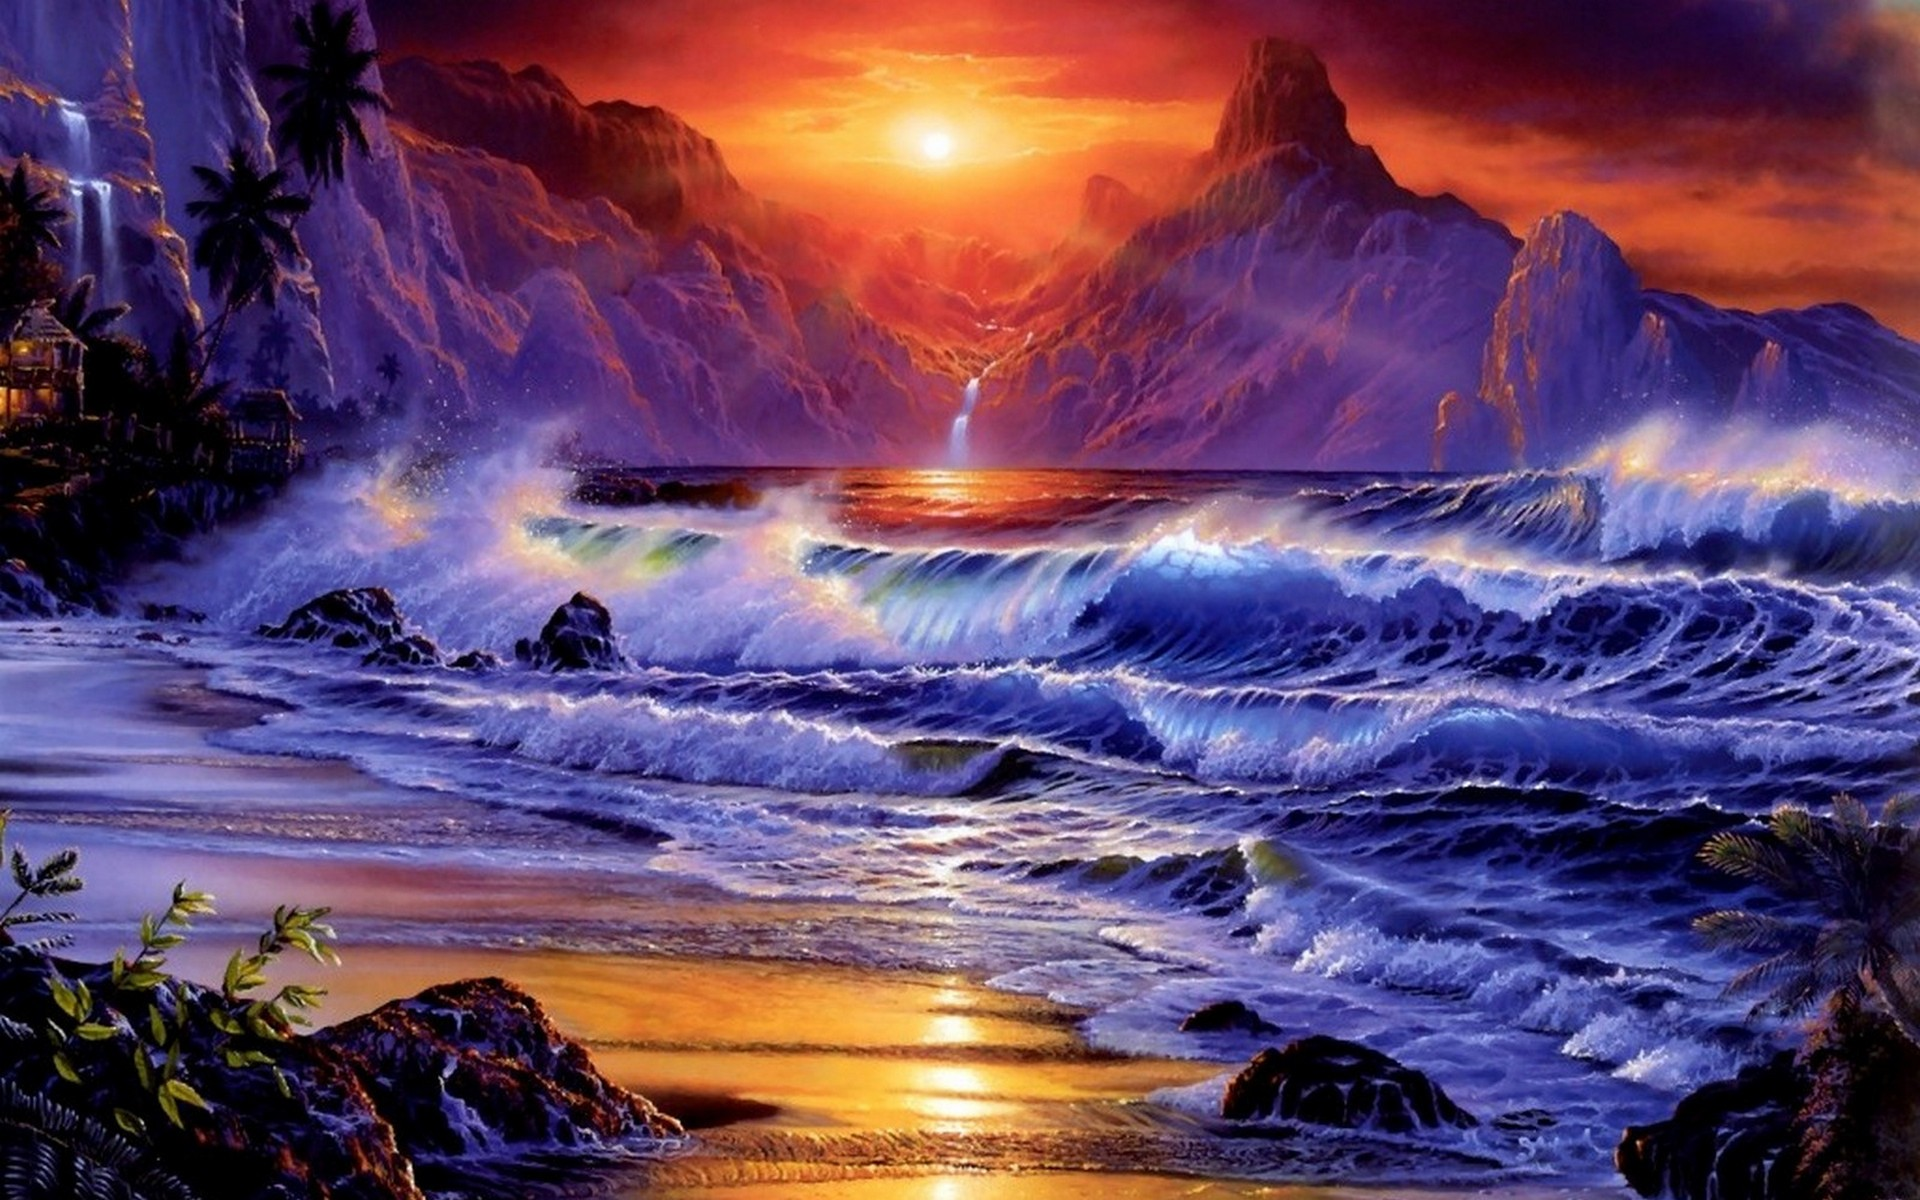 Sunsets Ocean Wallpaper 1920x1200 Sunsets Ocean Waves Fantasy Art 1920x1200